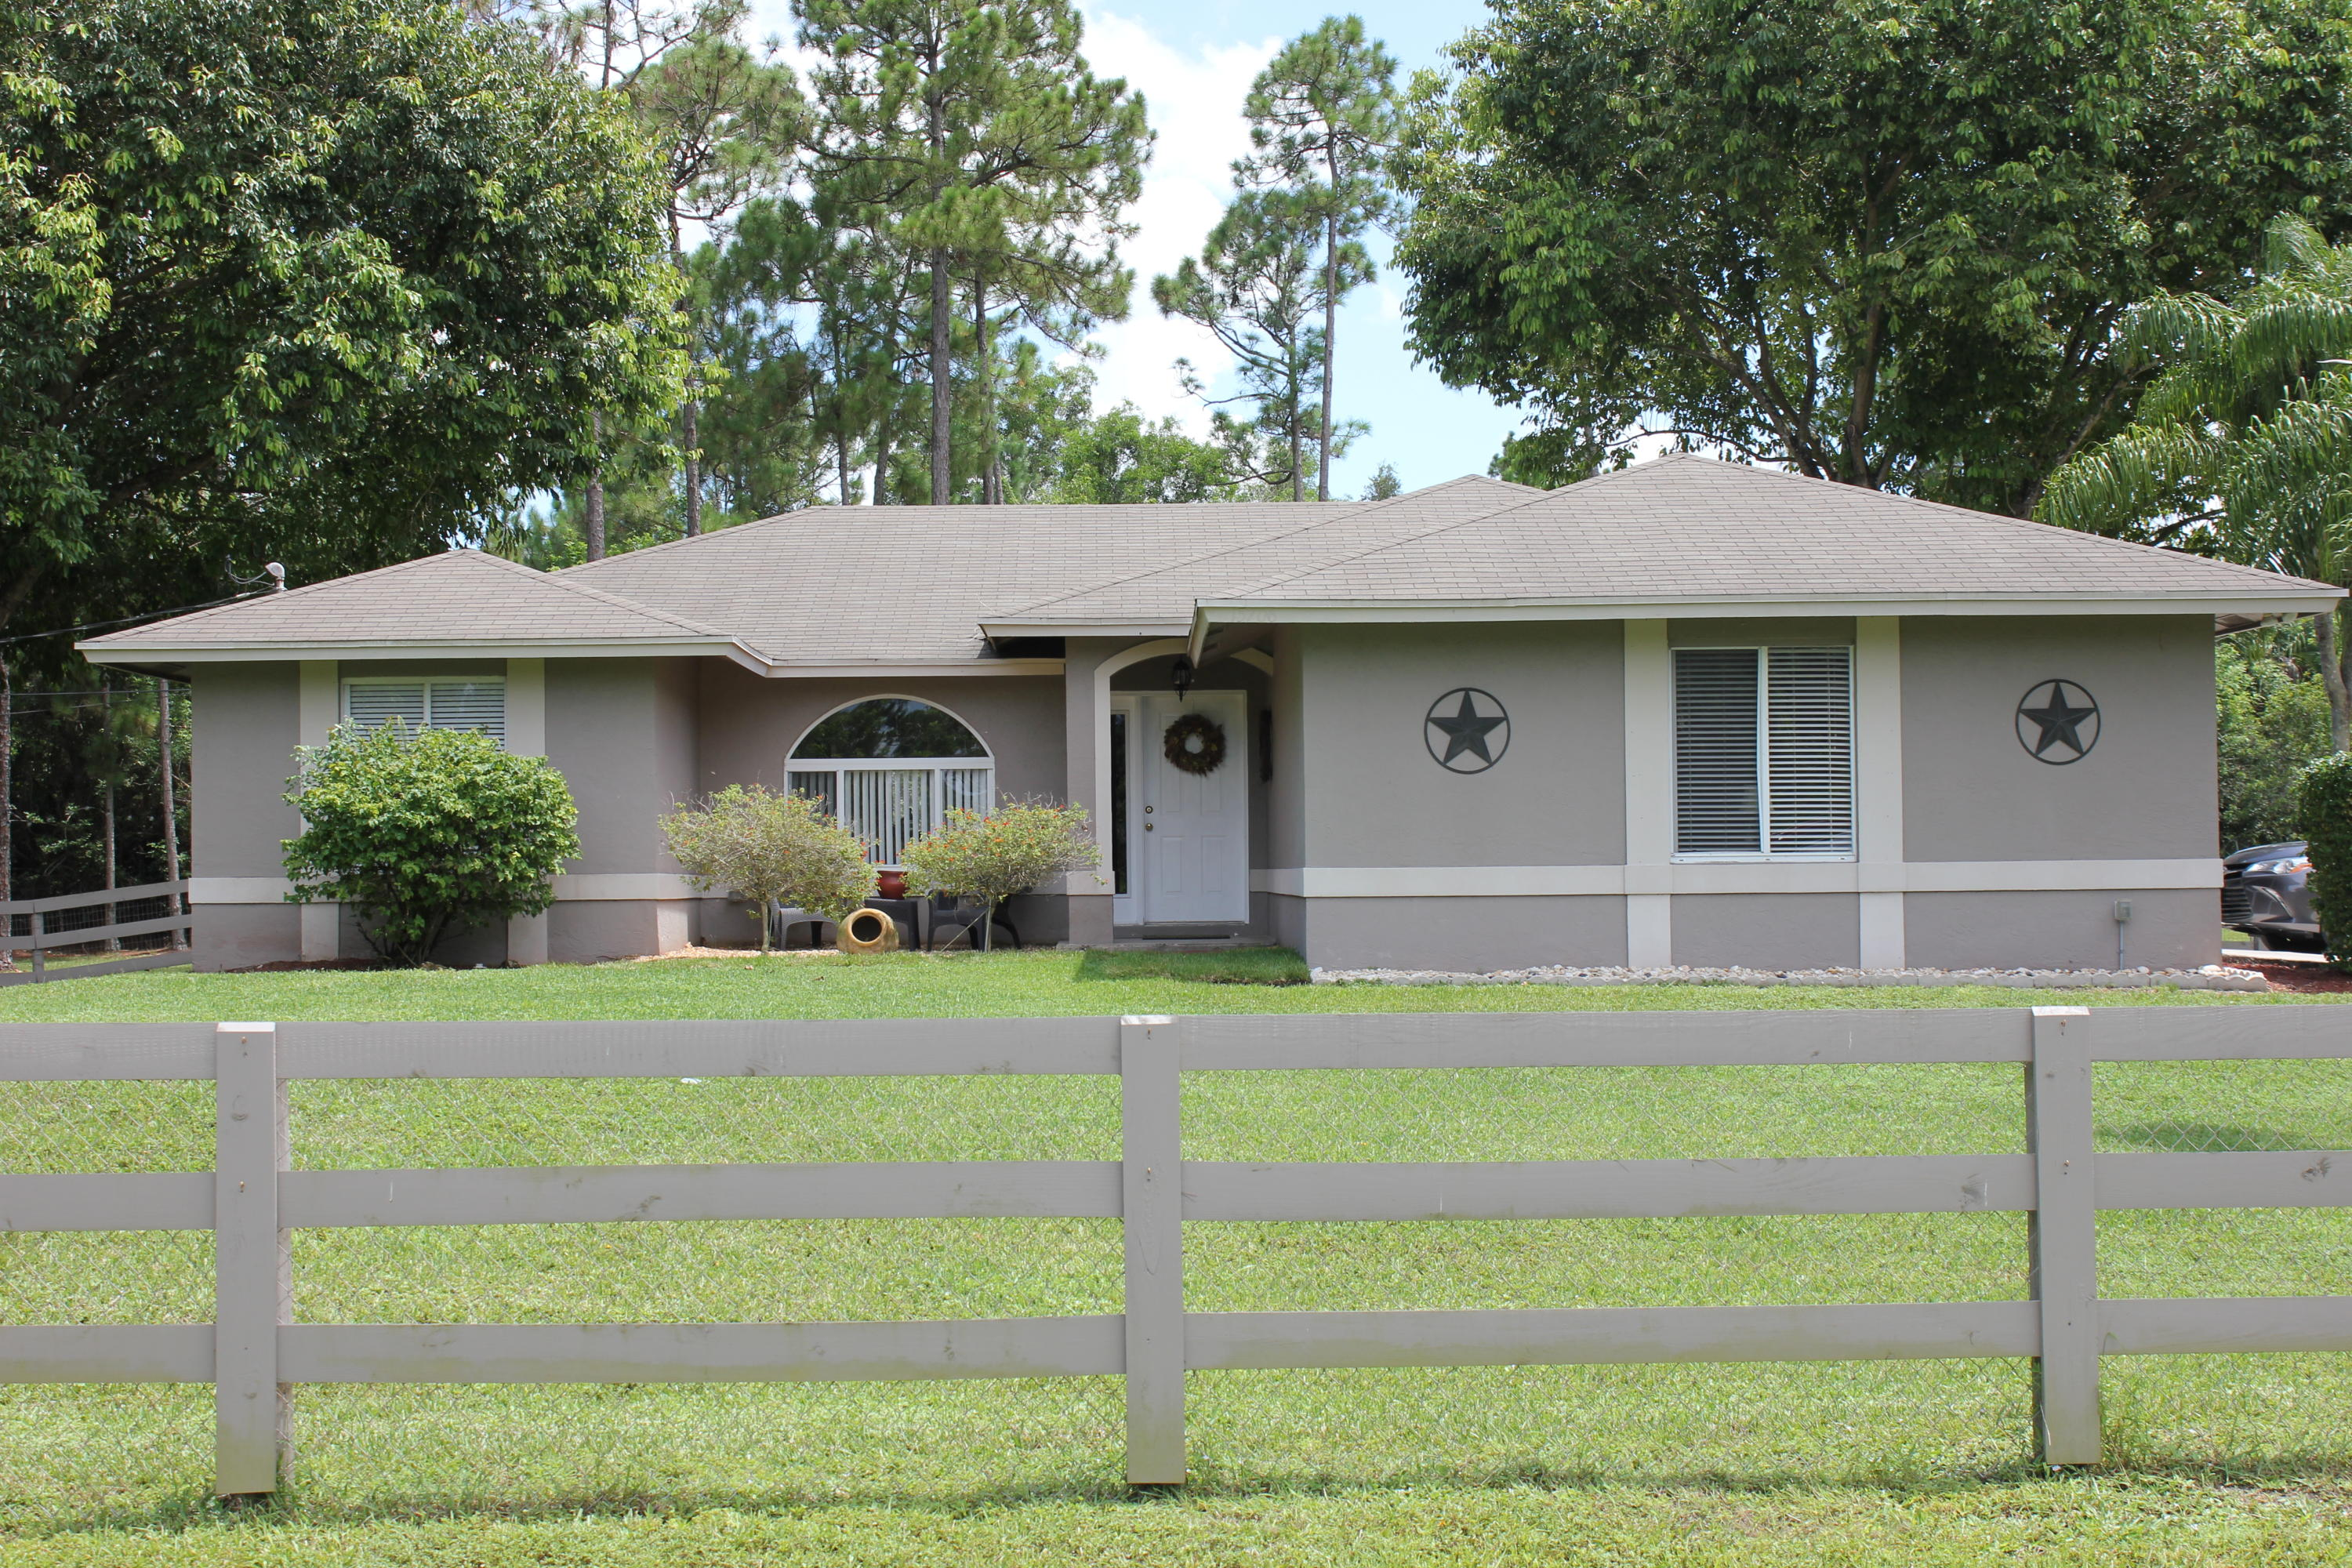 15706 68th Court N, The Acreage, FL 33470